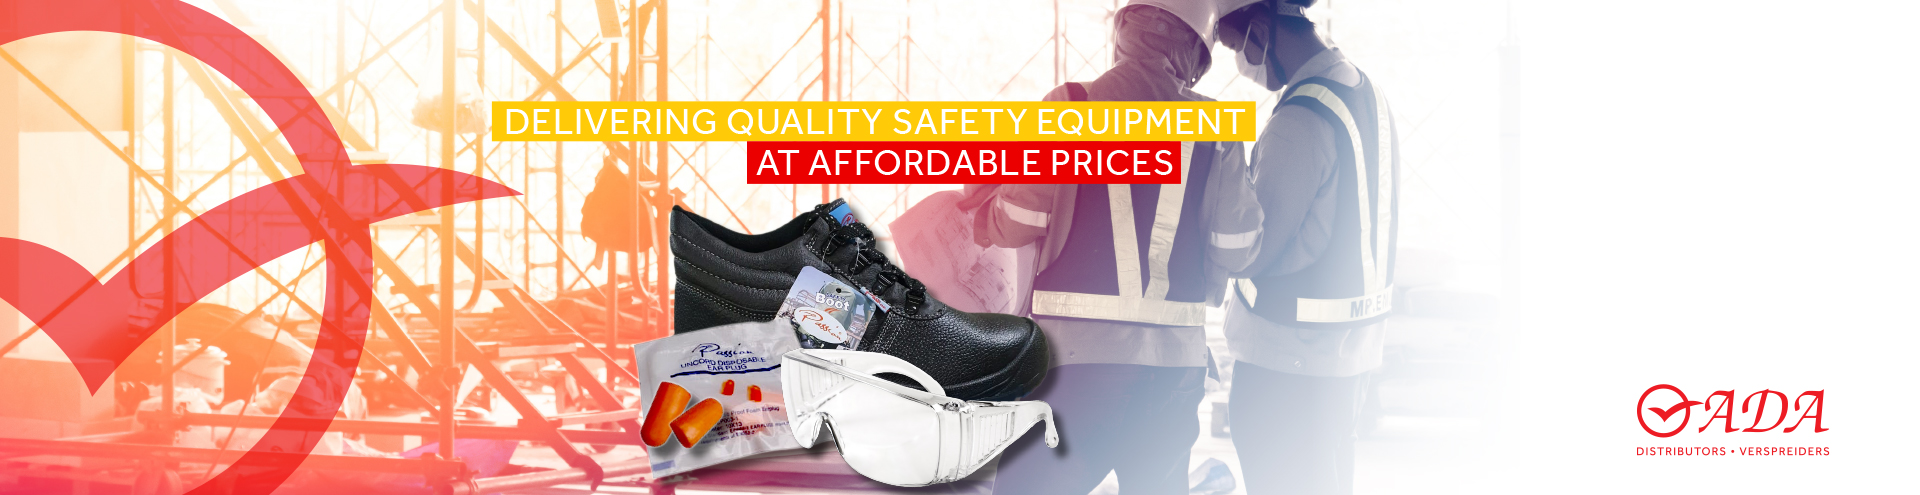 Delivering Quality Safety Equipment at Affordable Prices